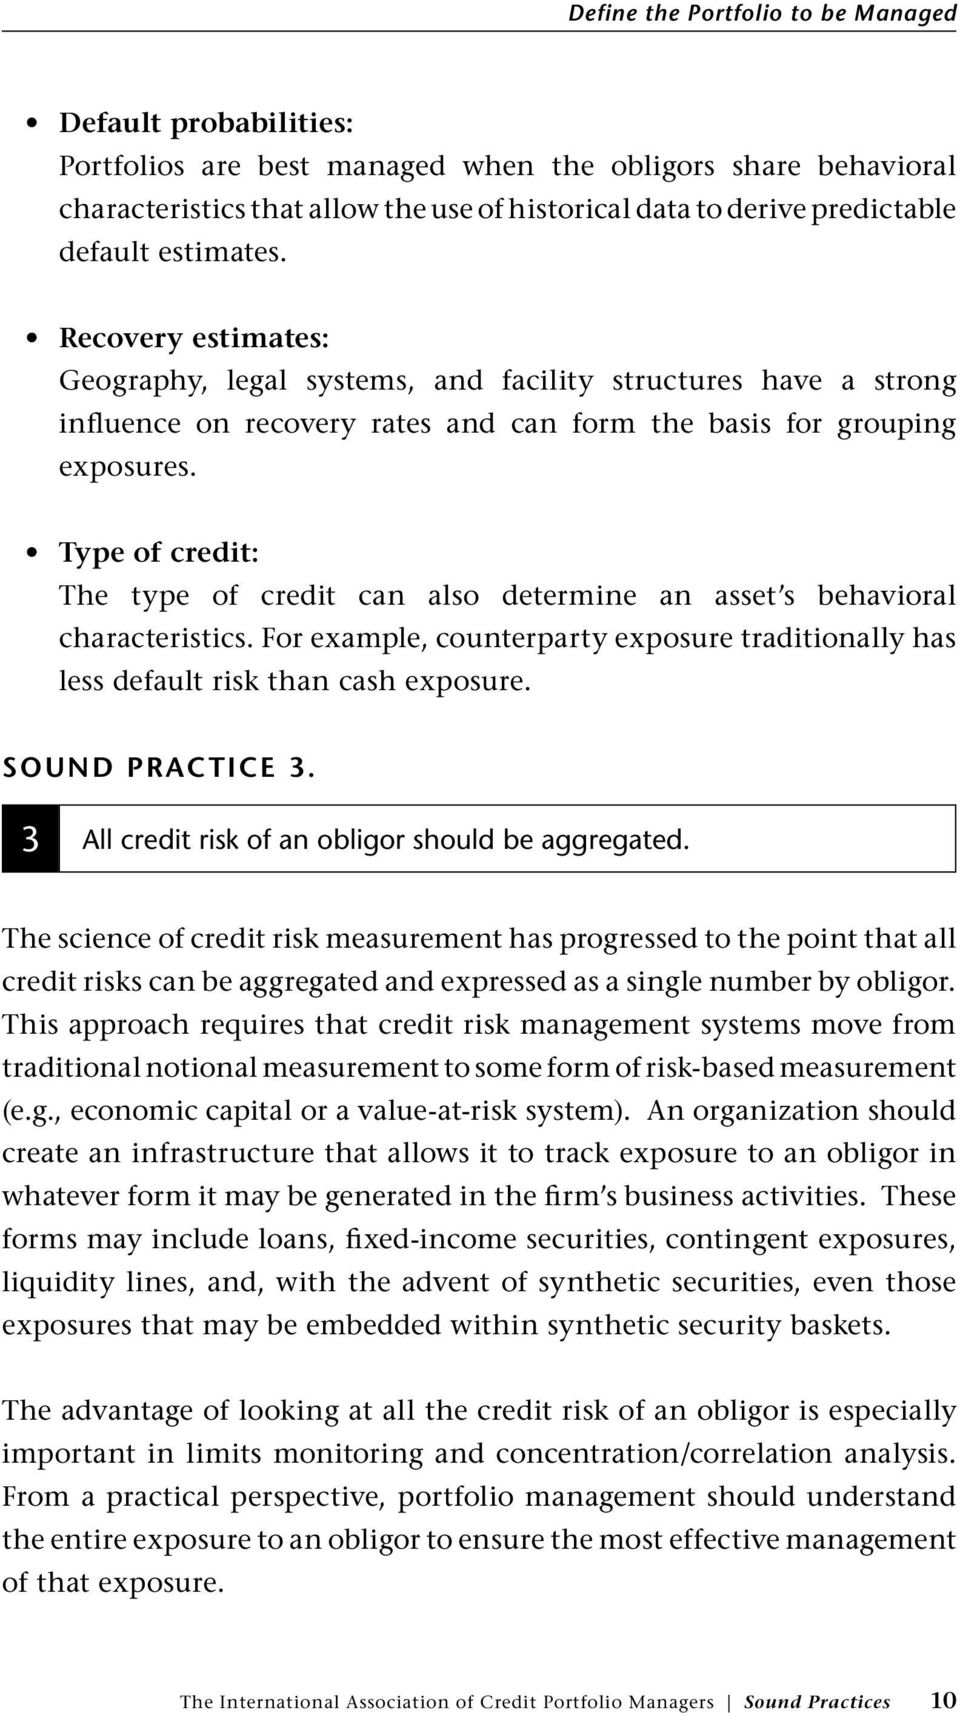 Type of credit: The type of credit can also determine an asset s behavioral characteristics. For example, counterparty exposure traditionally has less default risk than cash exposure.